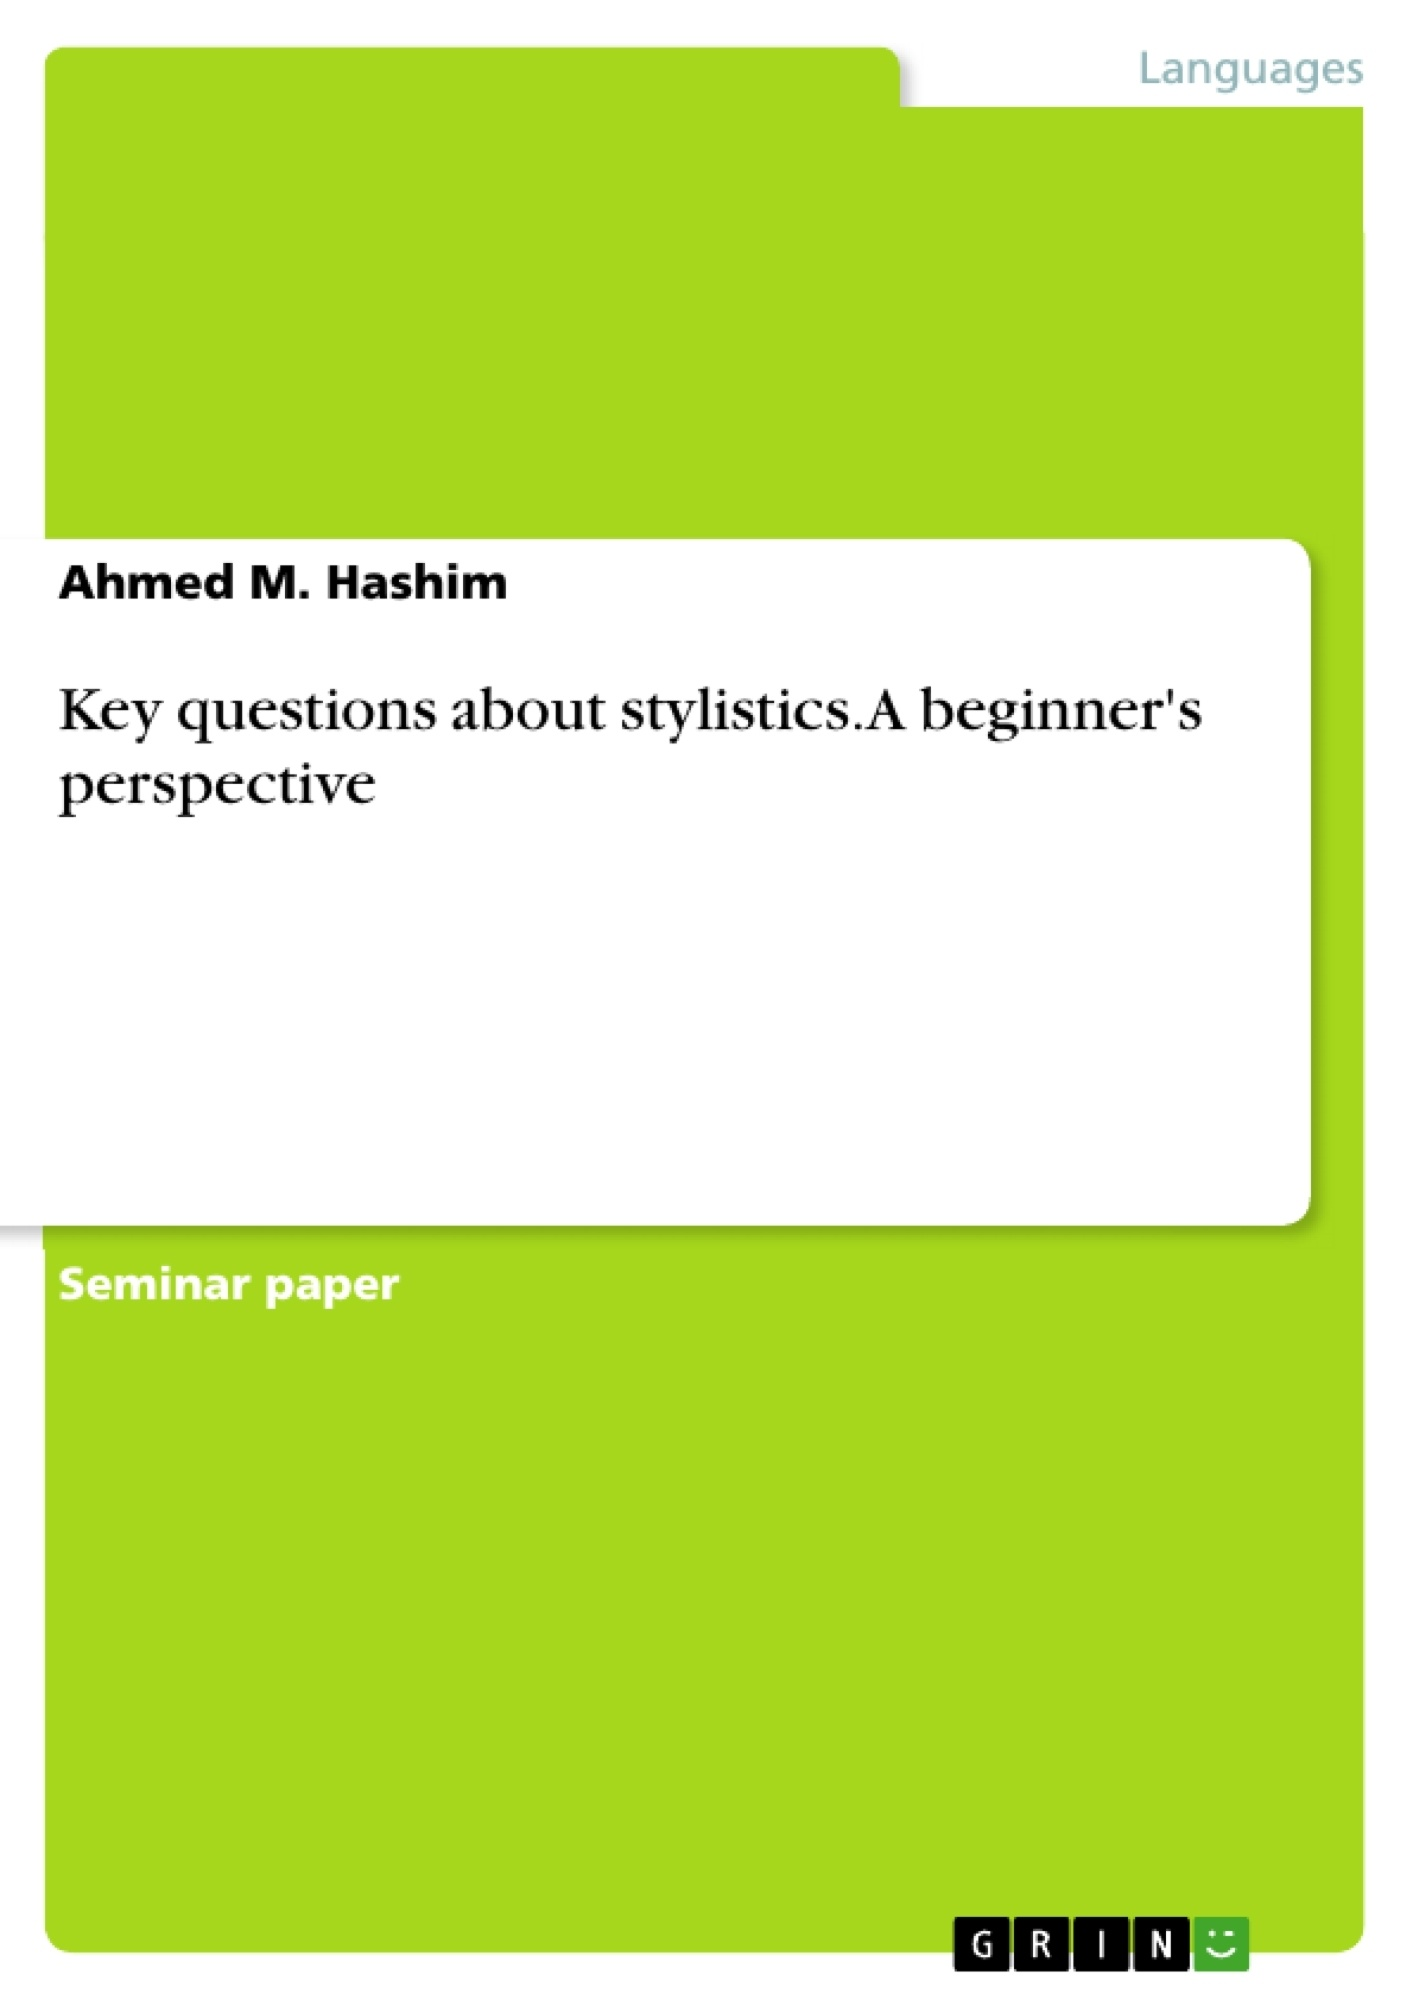 Title: Key questions about stylistics. A beginner's perspective